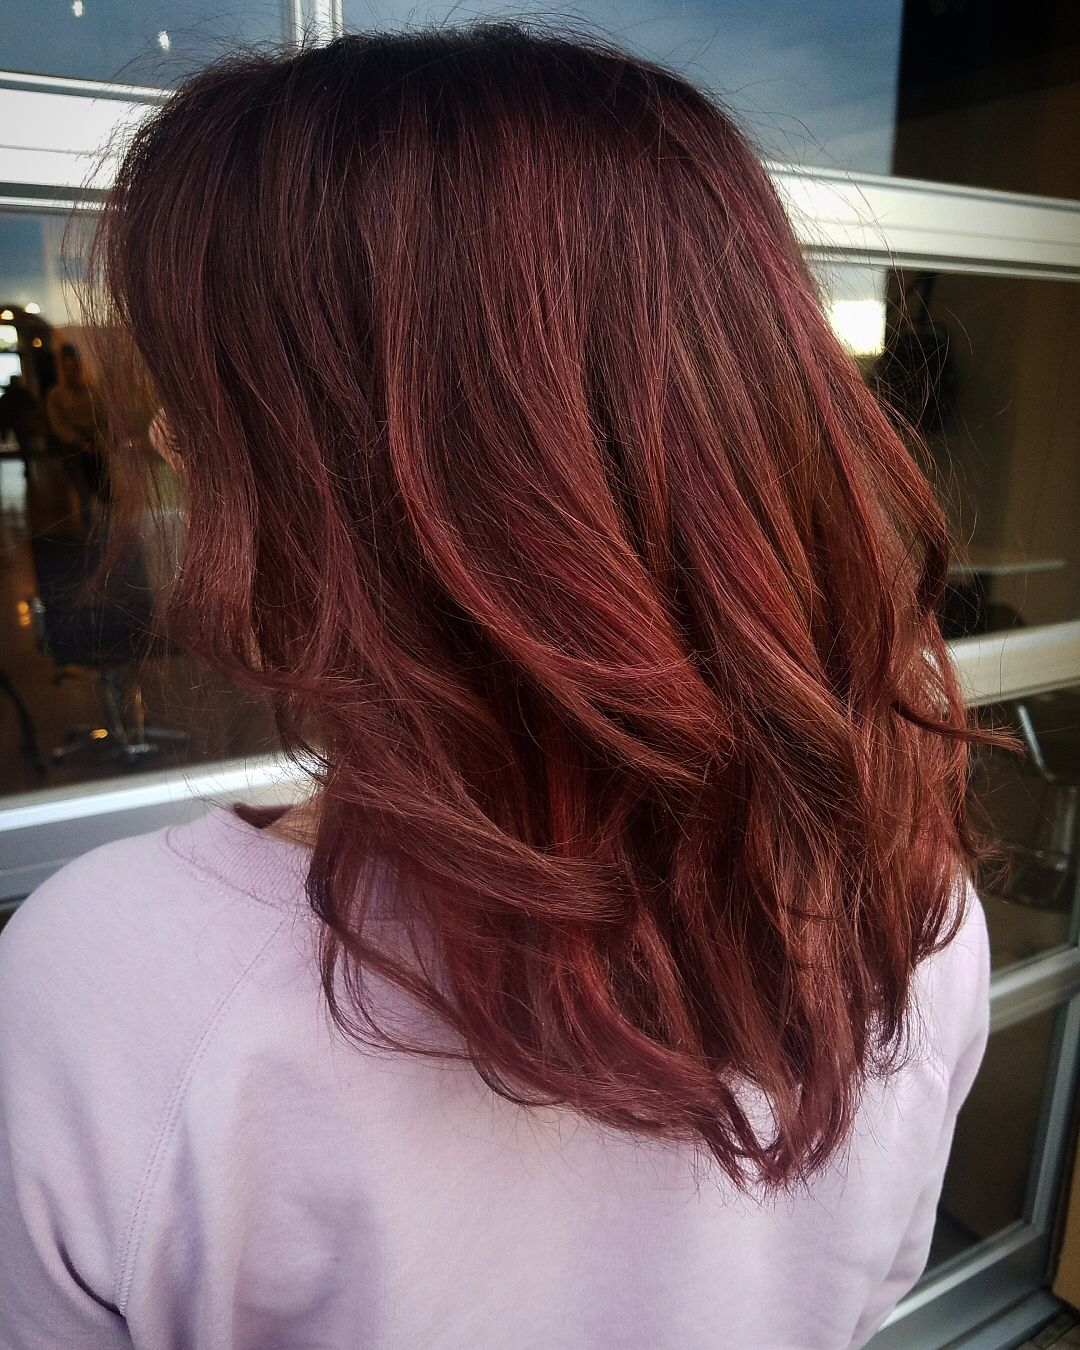 40+ stunning red hairstyles for women - page 24 of 45   red